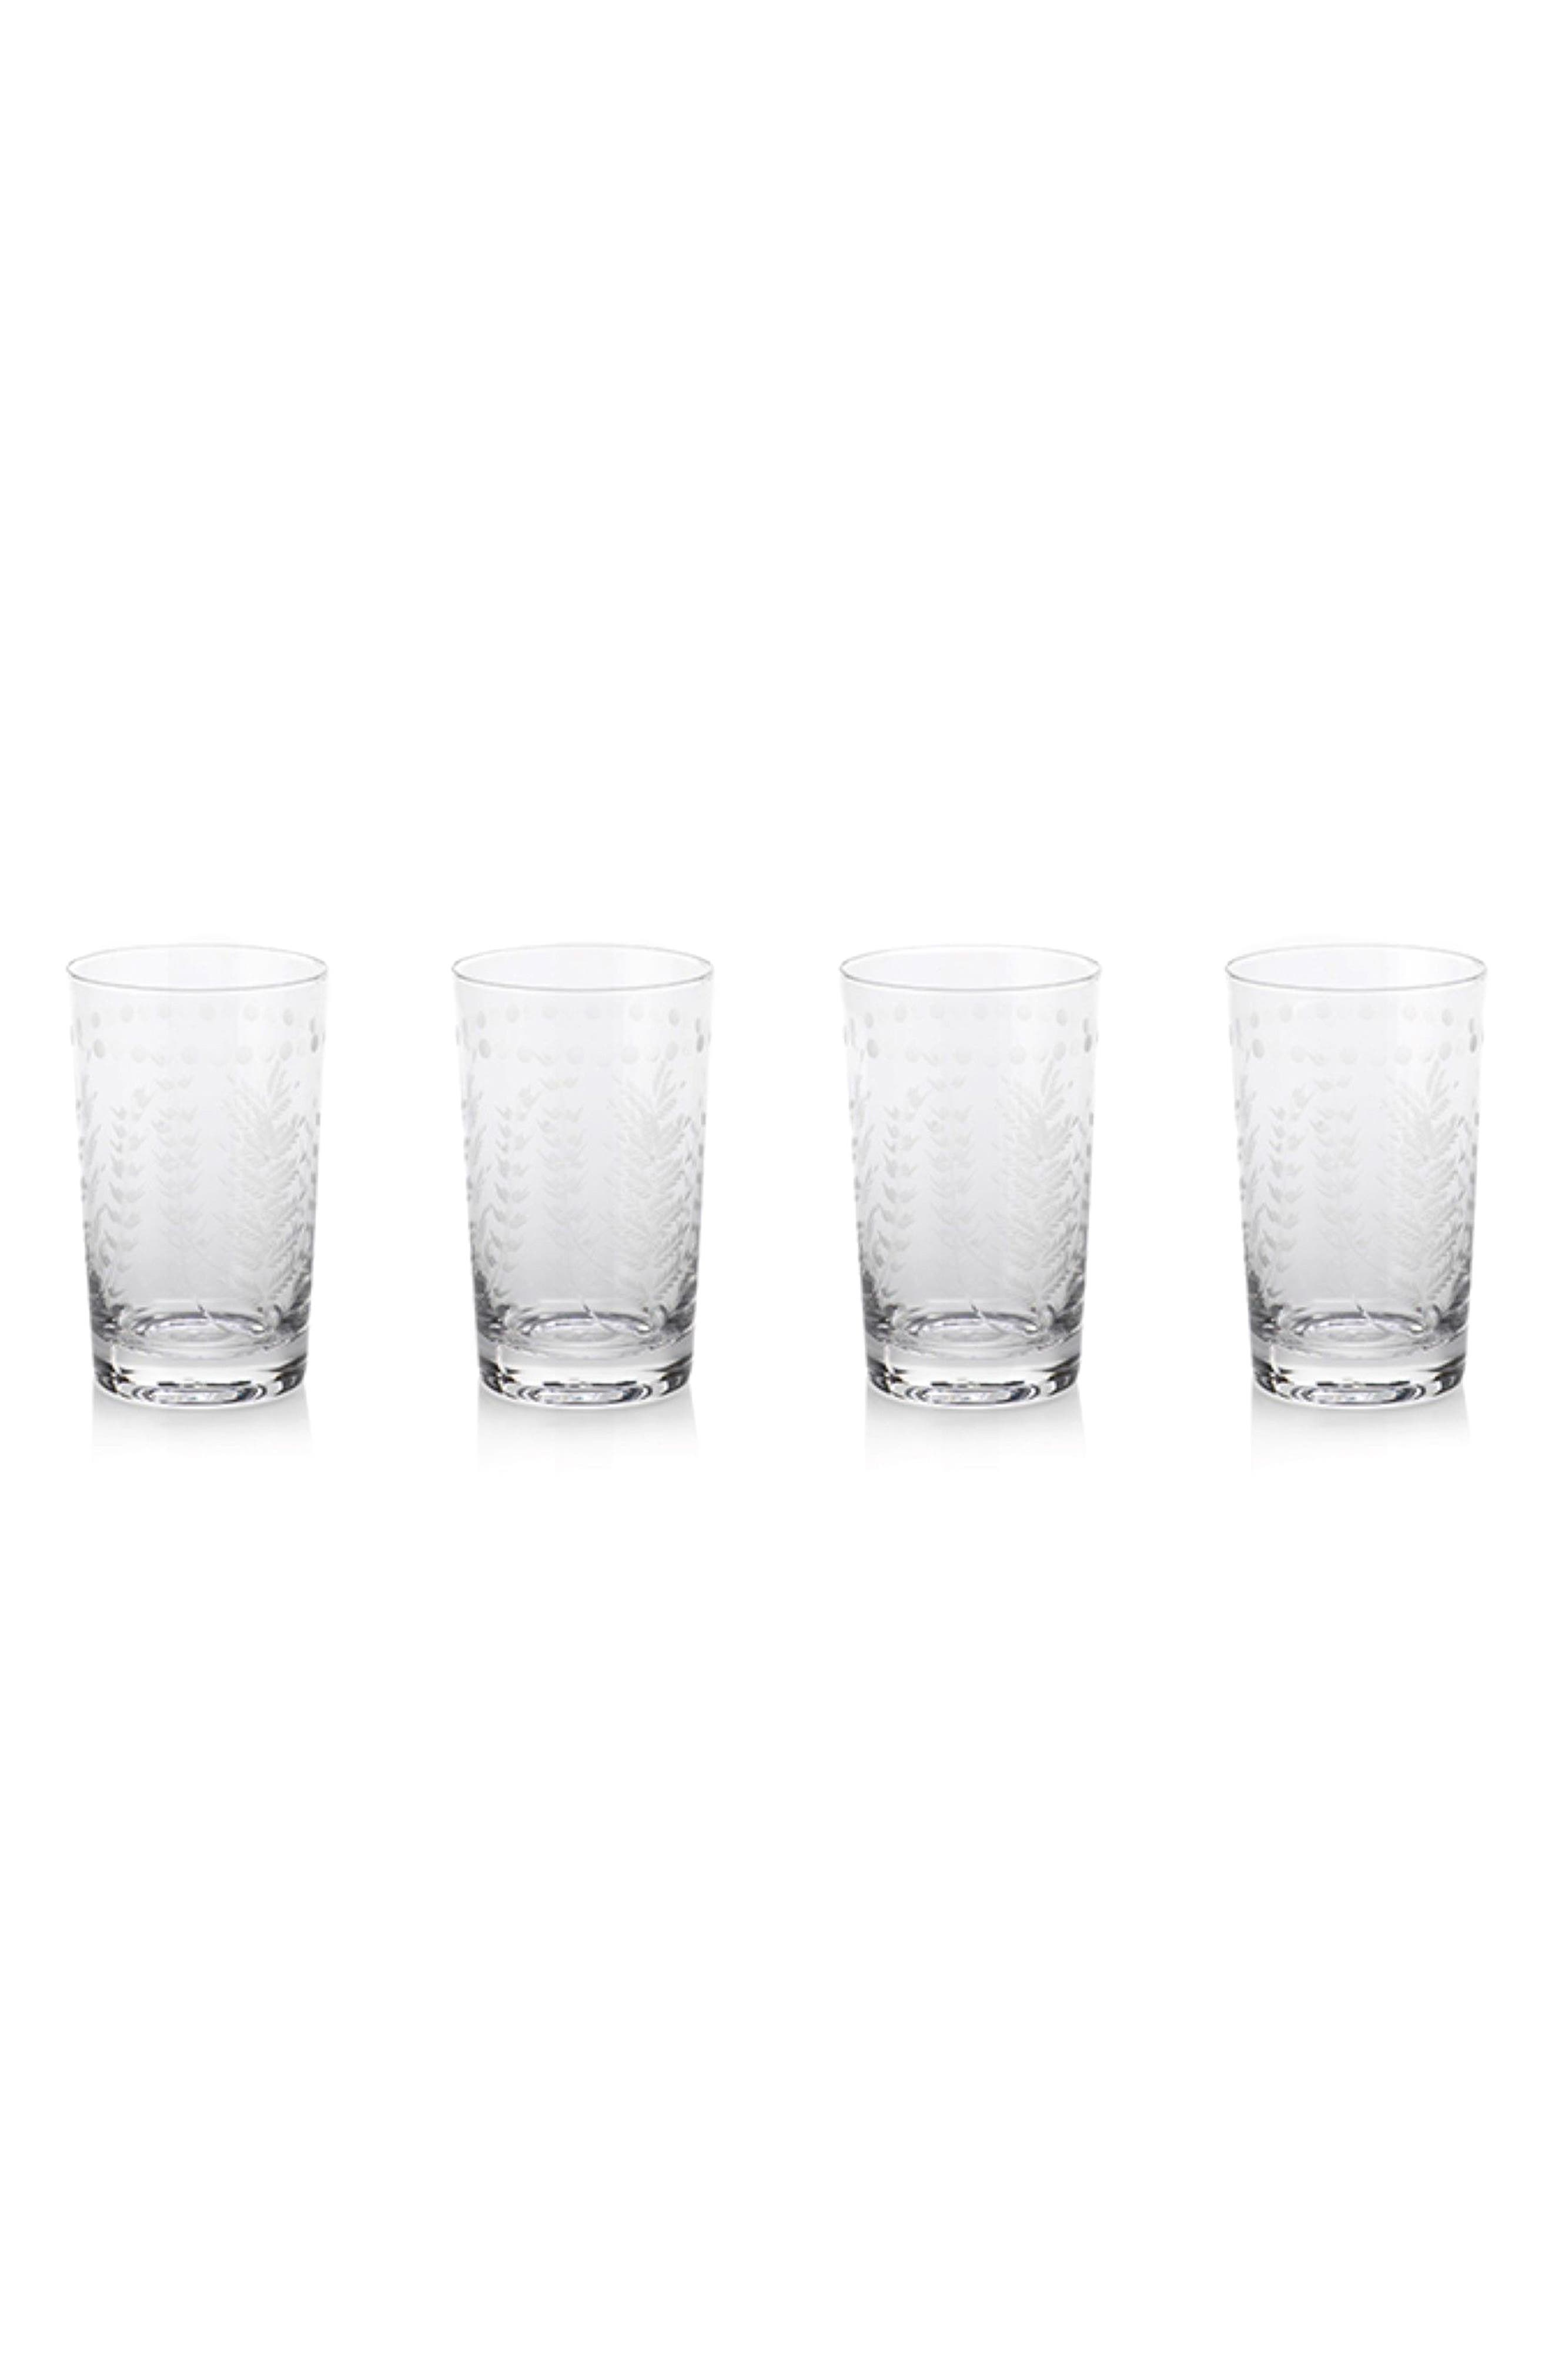 Patia Set of 4 Highball Glasses,                         Main,                         color, Clear